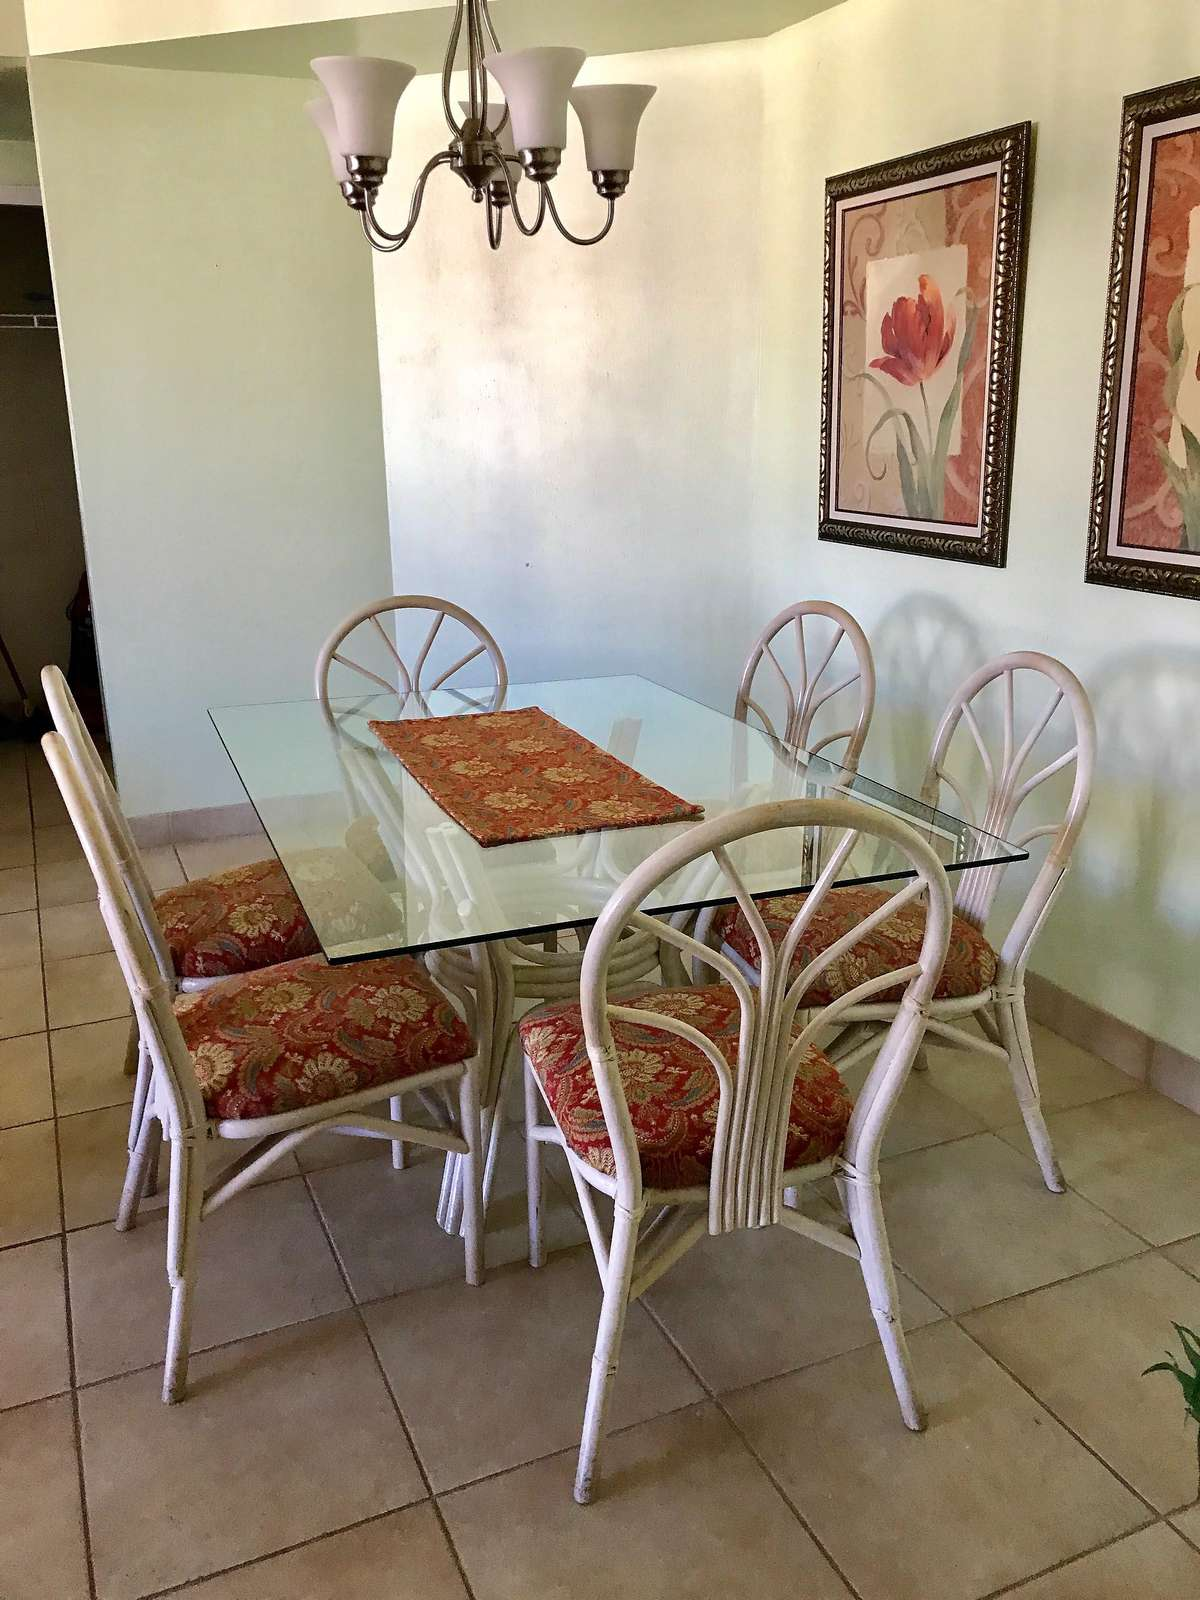 The dining room table seats 6.